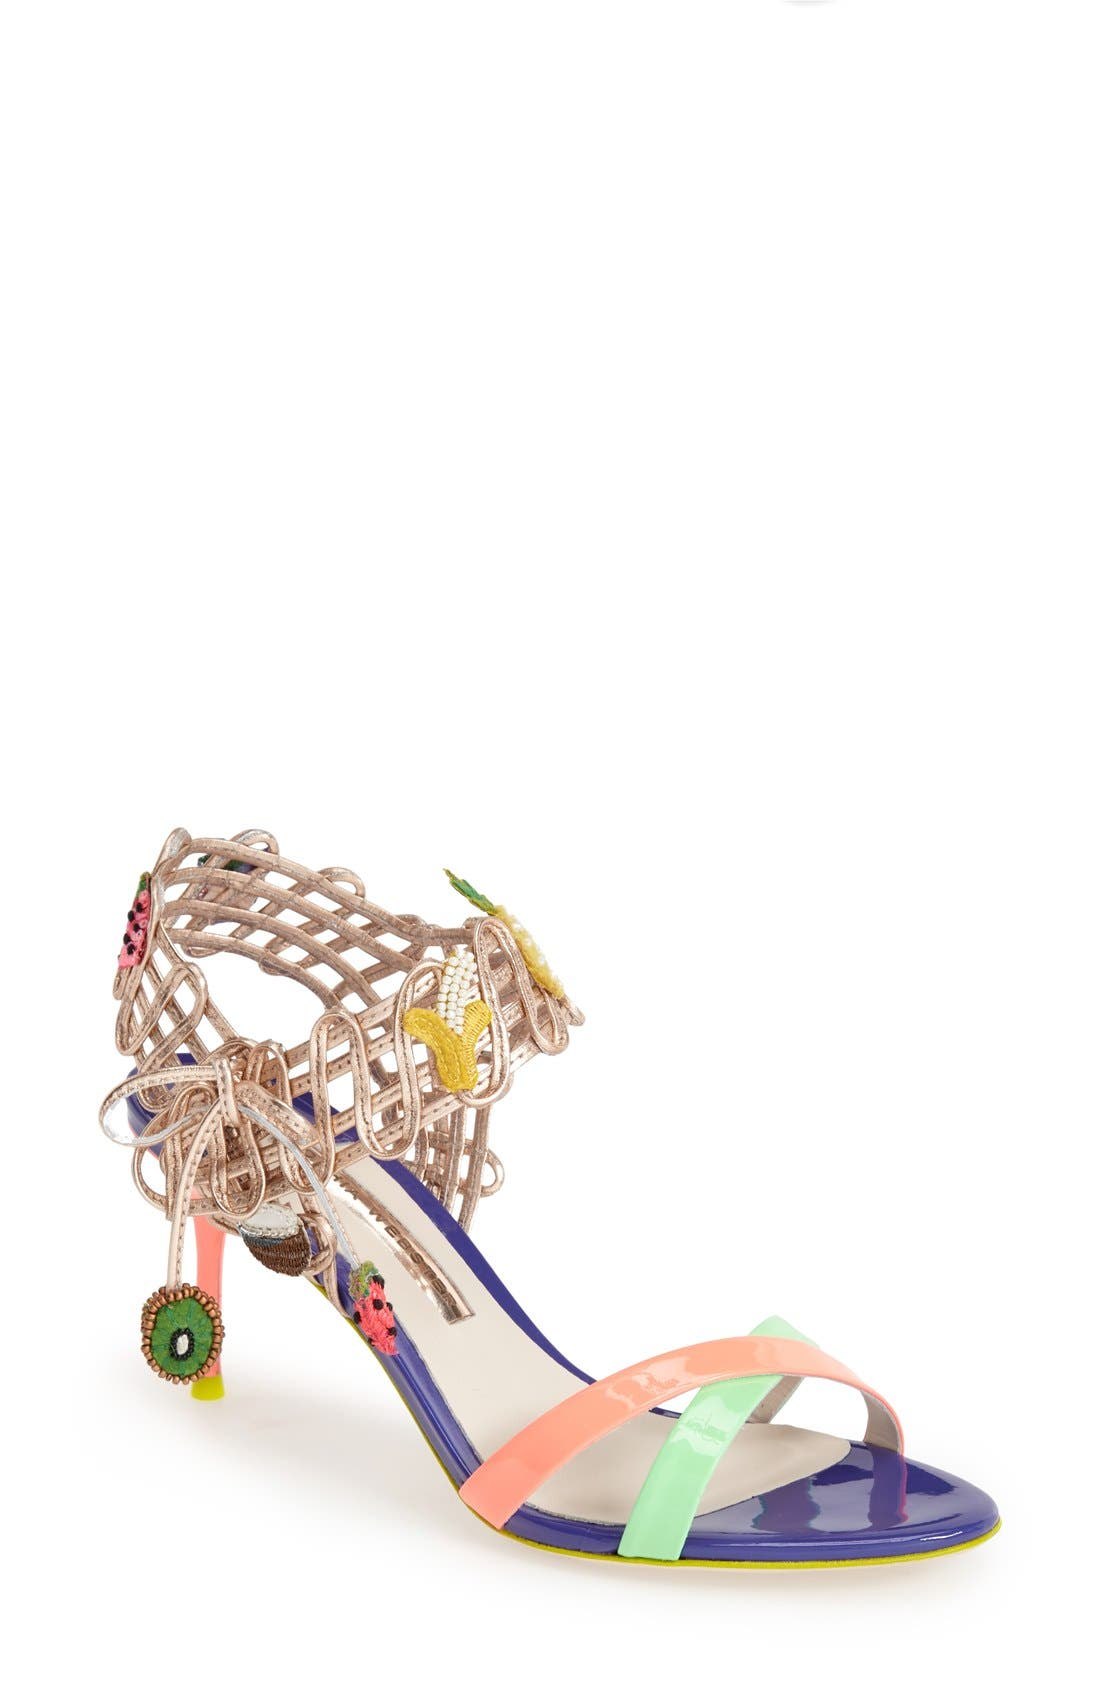 Main Image - Sophia Webster 'Delphine Fruit' Sandal (Women)